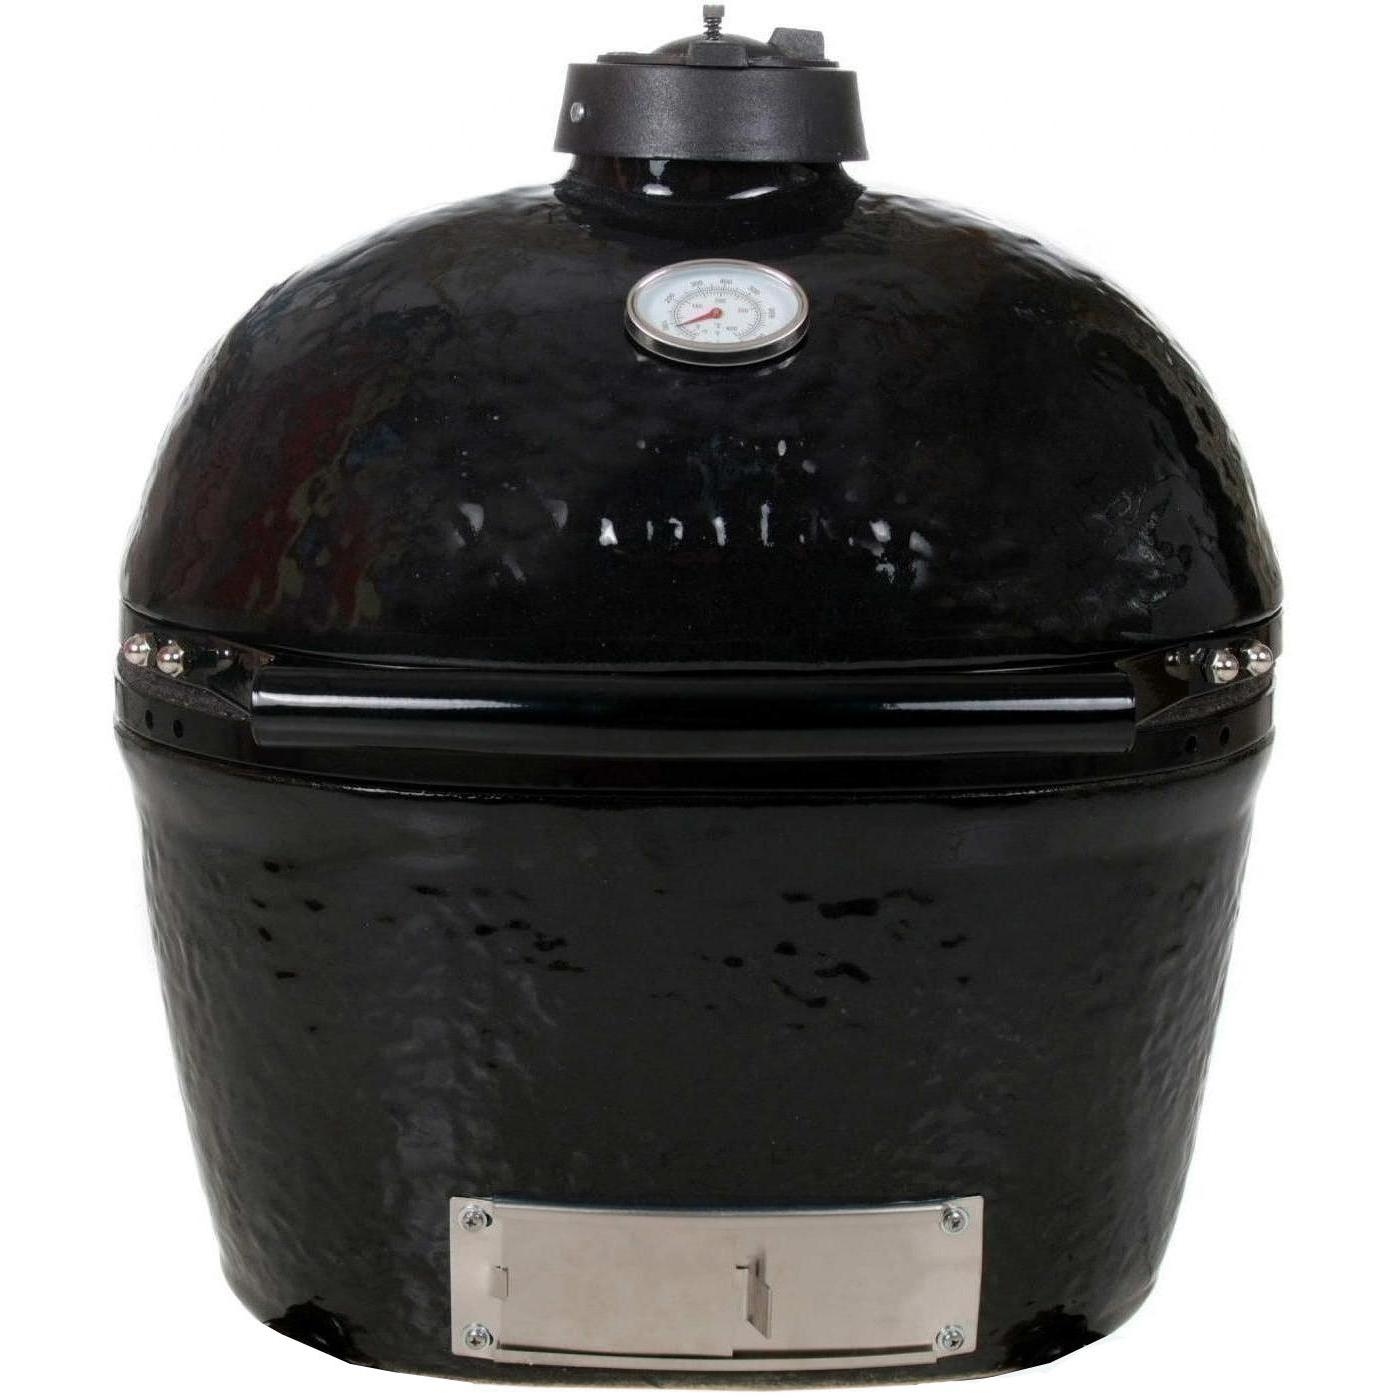 Primo Ceramic Charcoal Smoker Grill - Oval Junior, Discount ID 774